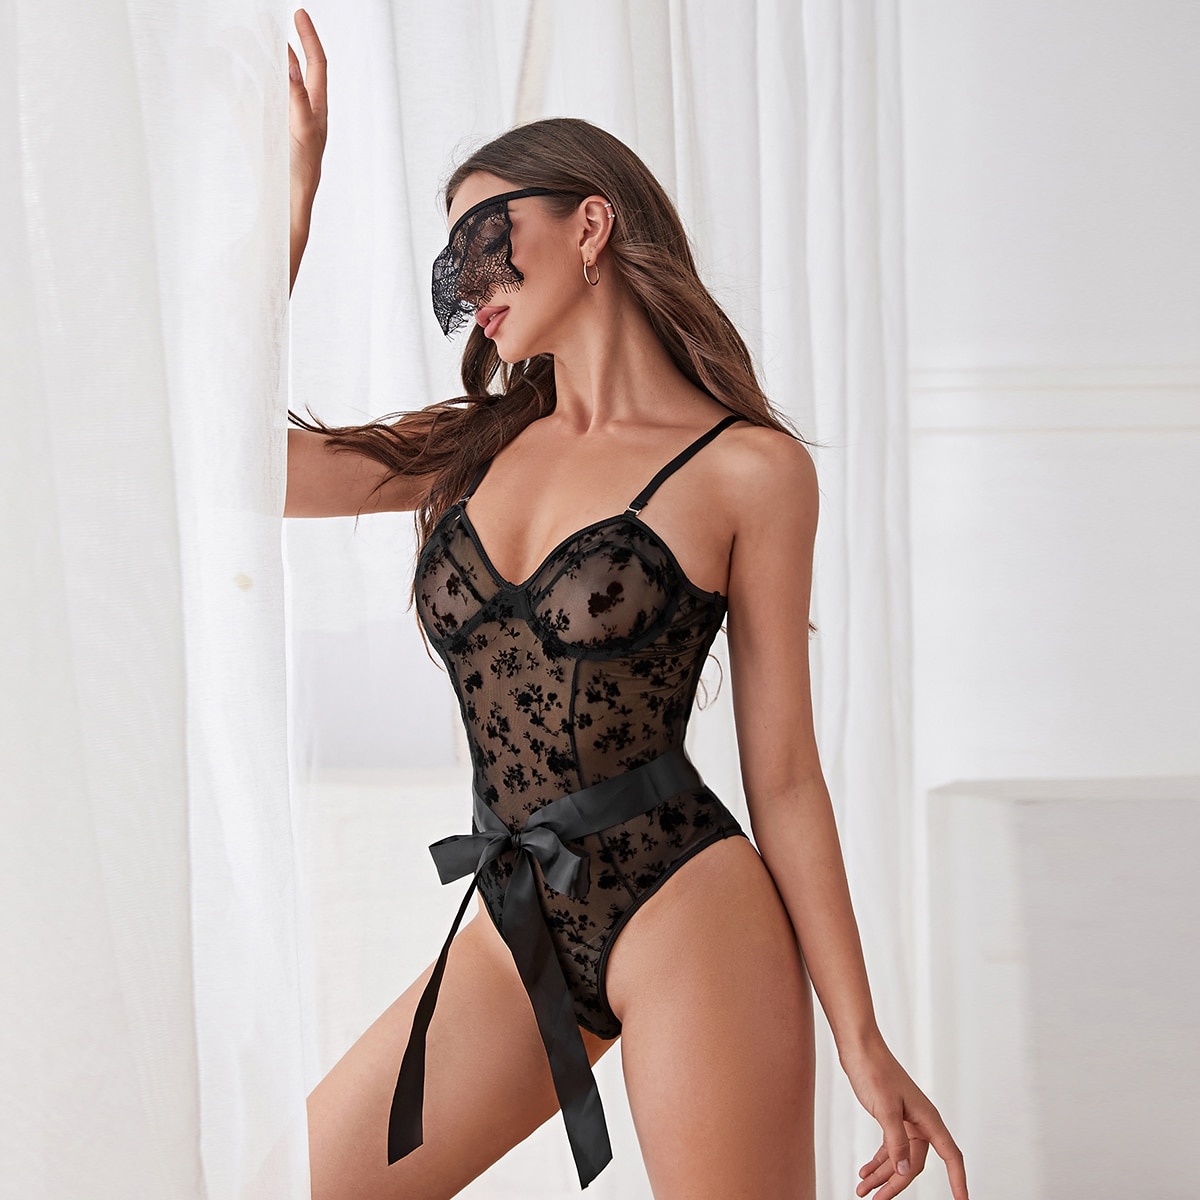 Floral Print Mesh Belted Costume Bodysuit With Blindfold, SHEIN  - buy with discount